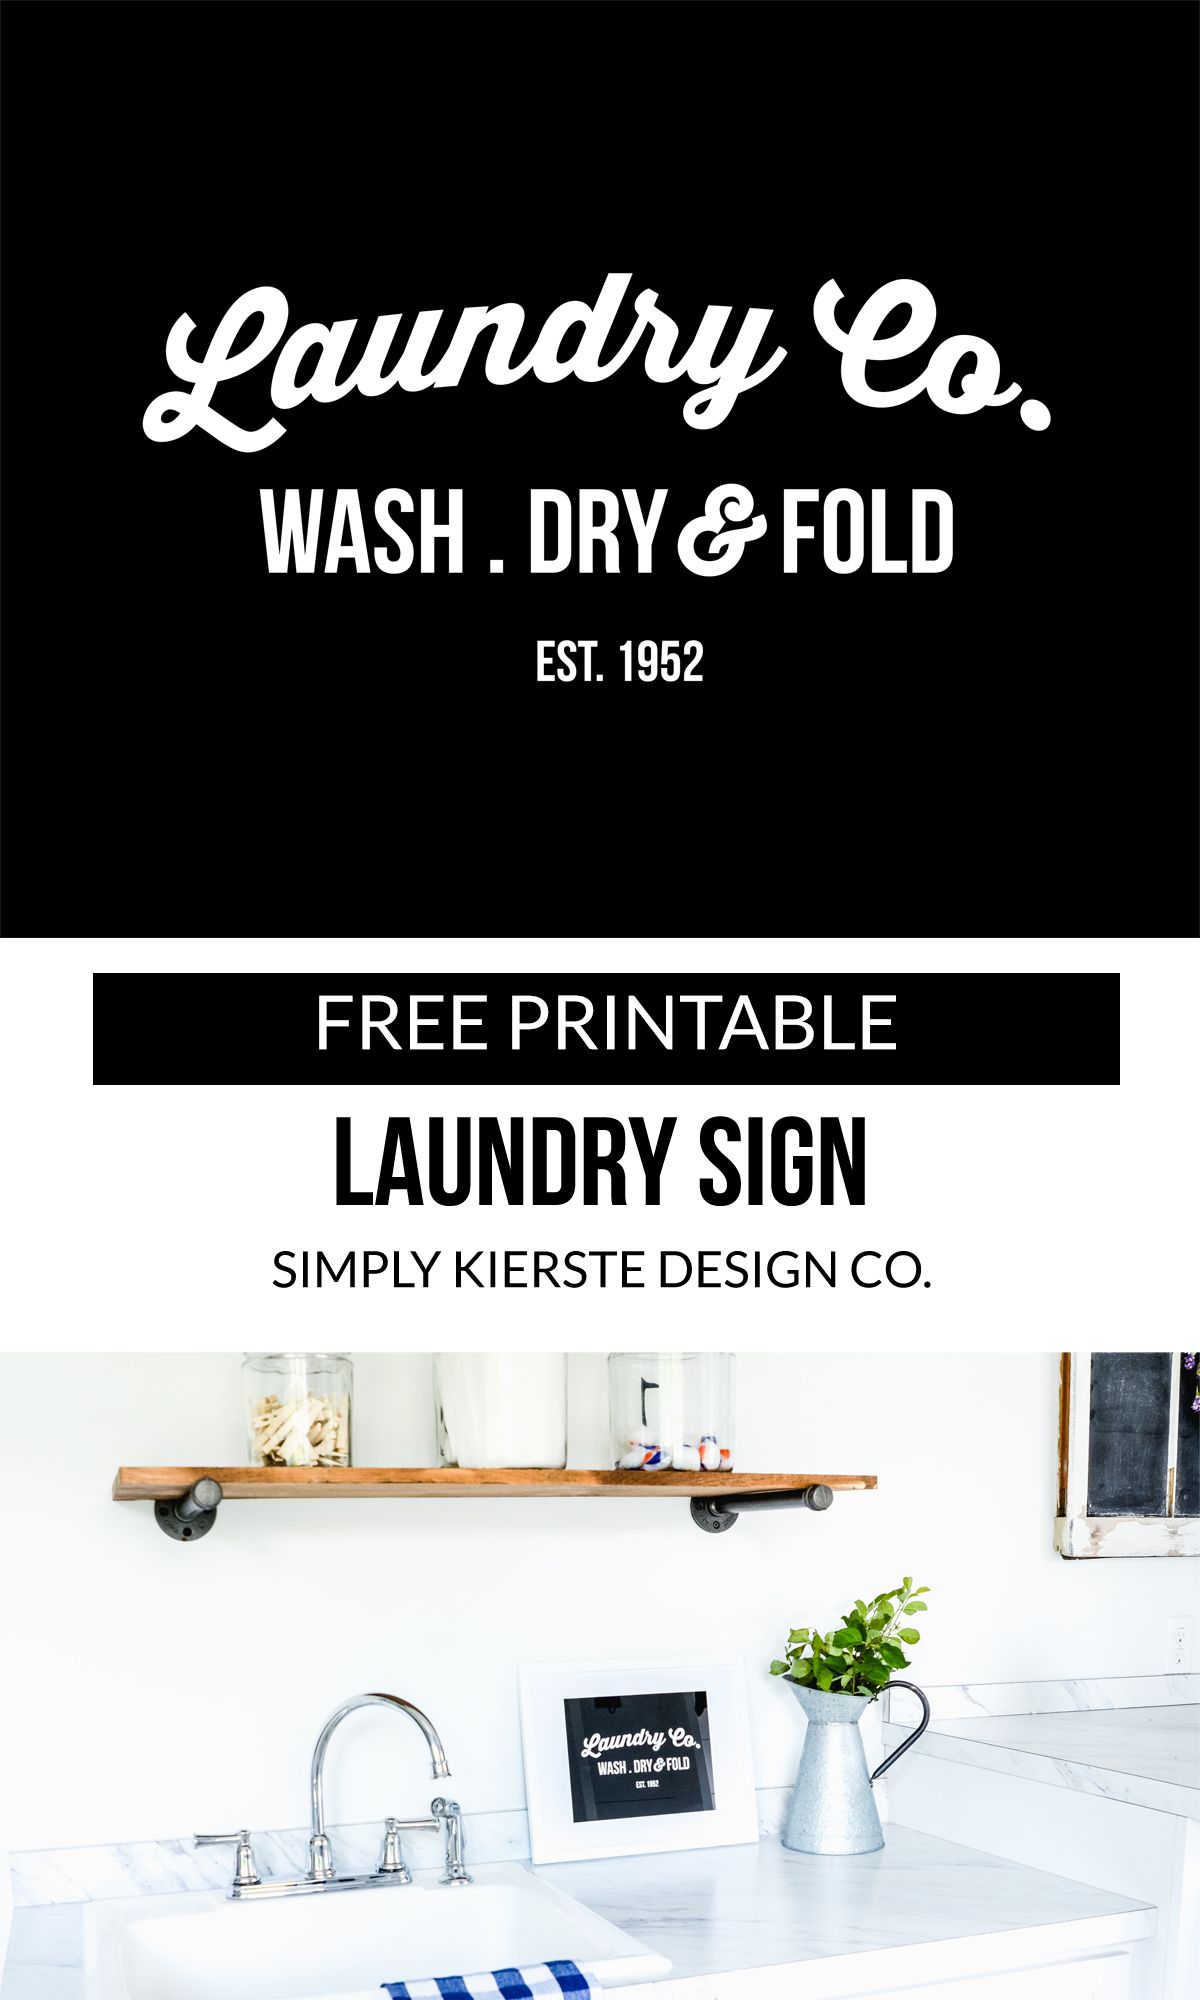 image relating to Free Printable Laundry Room Signs known as Absolutely free Printable Laundry Indication Bloggers Least complicated Laundry indicators